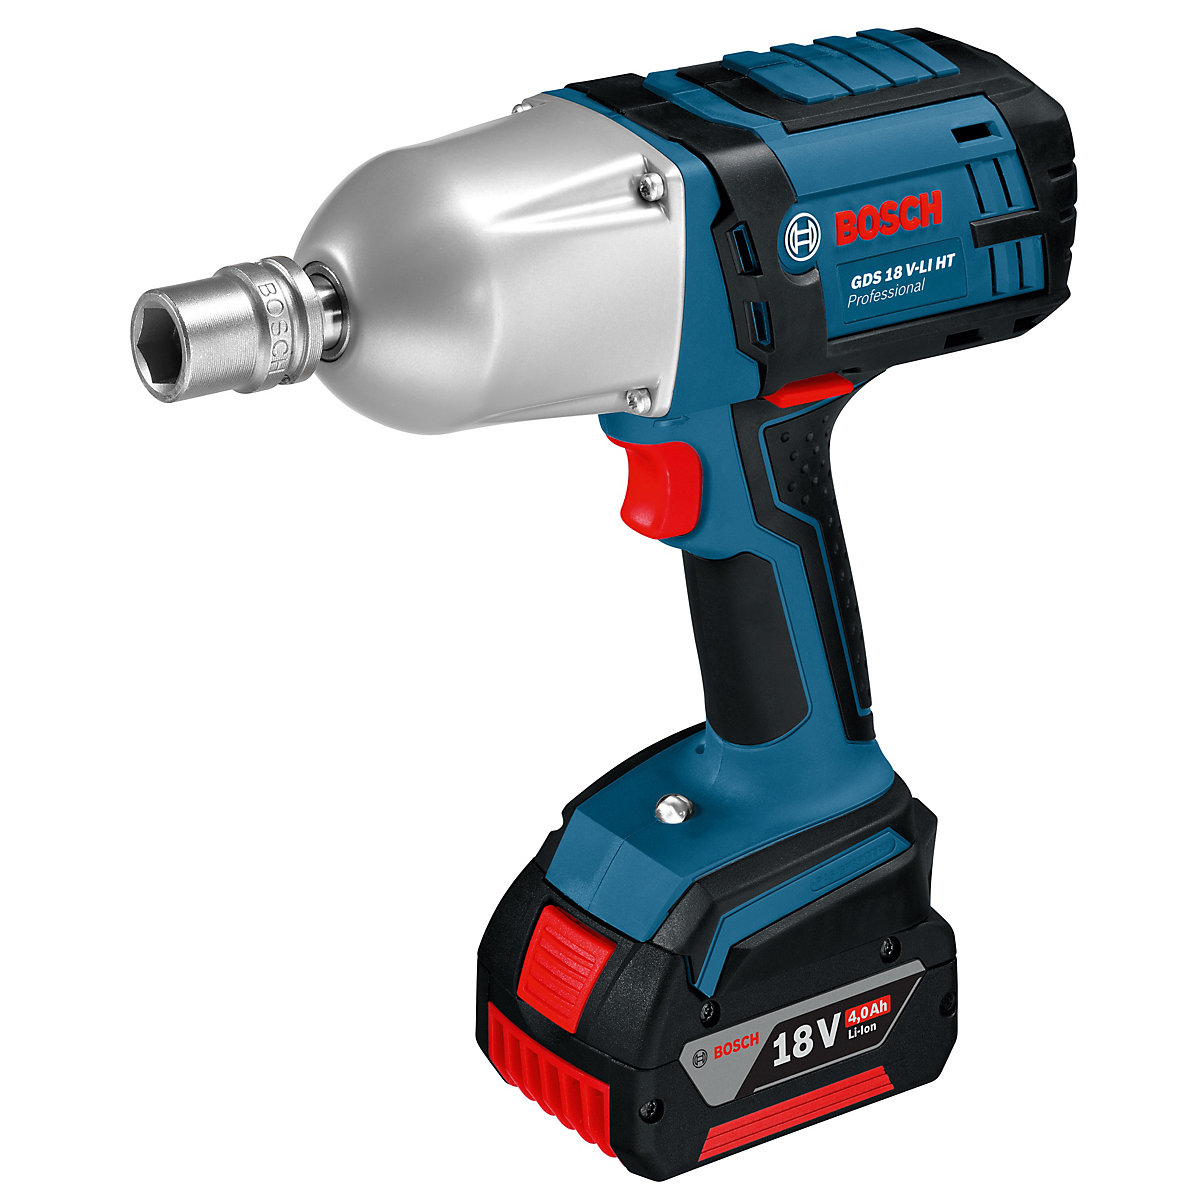 59a131c7679 Bosch Gds 18 V-li Ht 650NM 18V Impact Wrench with 2 x 5.0 Ah Batteries and  Charger in A L-boxx | Travis Perkins